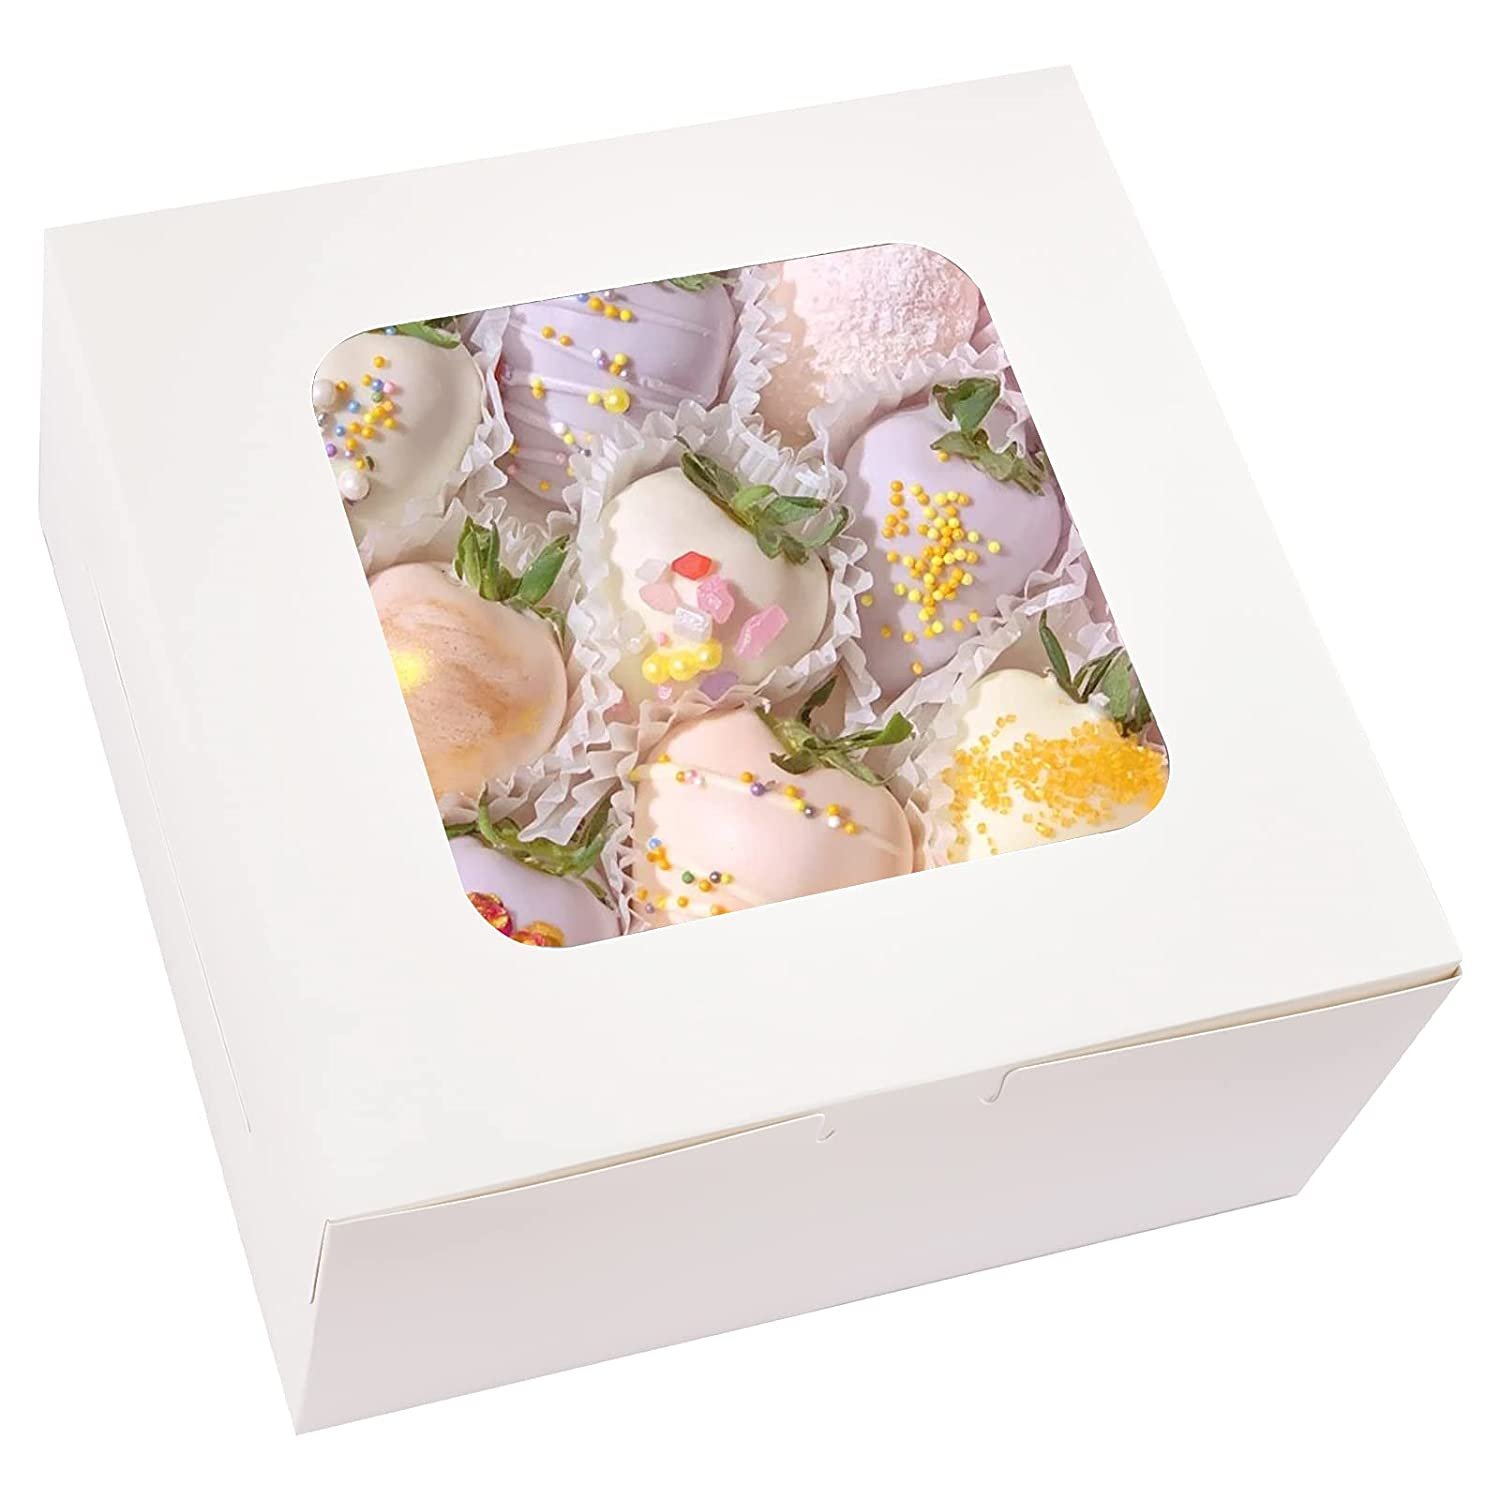 Kucoele 15pcs 10x10x5 Inches Cake Boxes mart Window service Paper with White